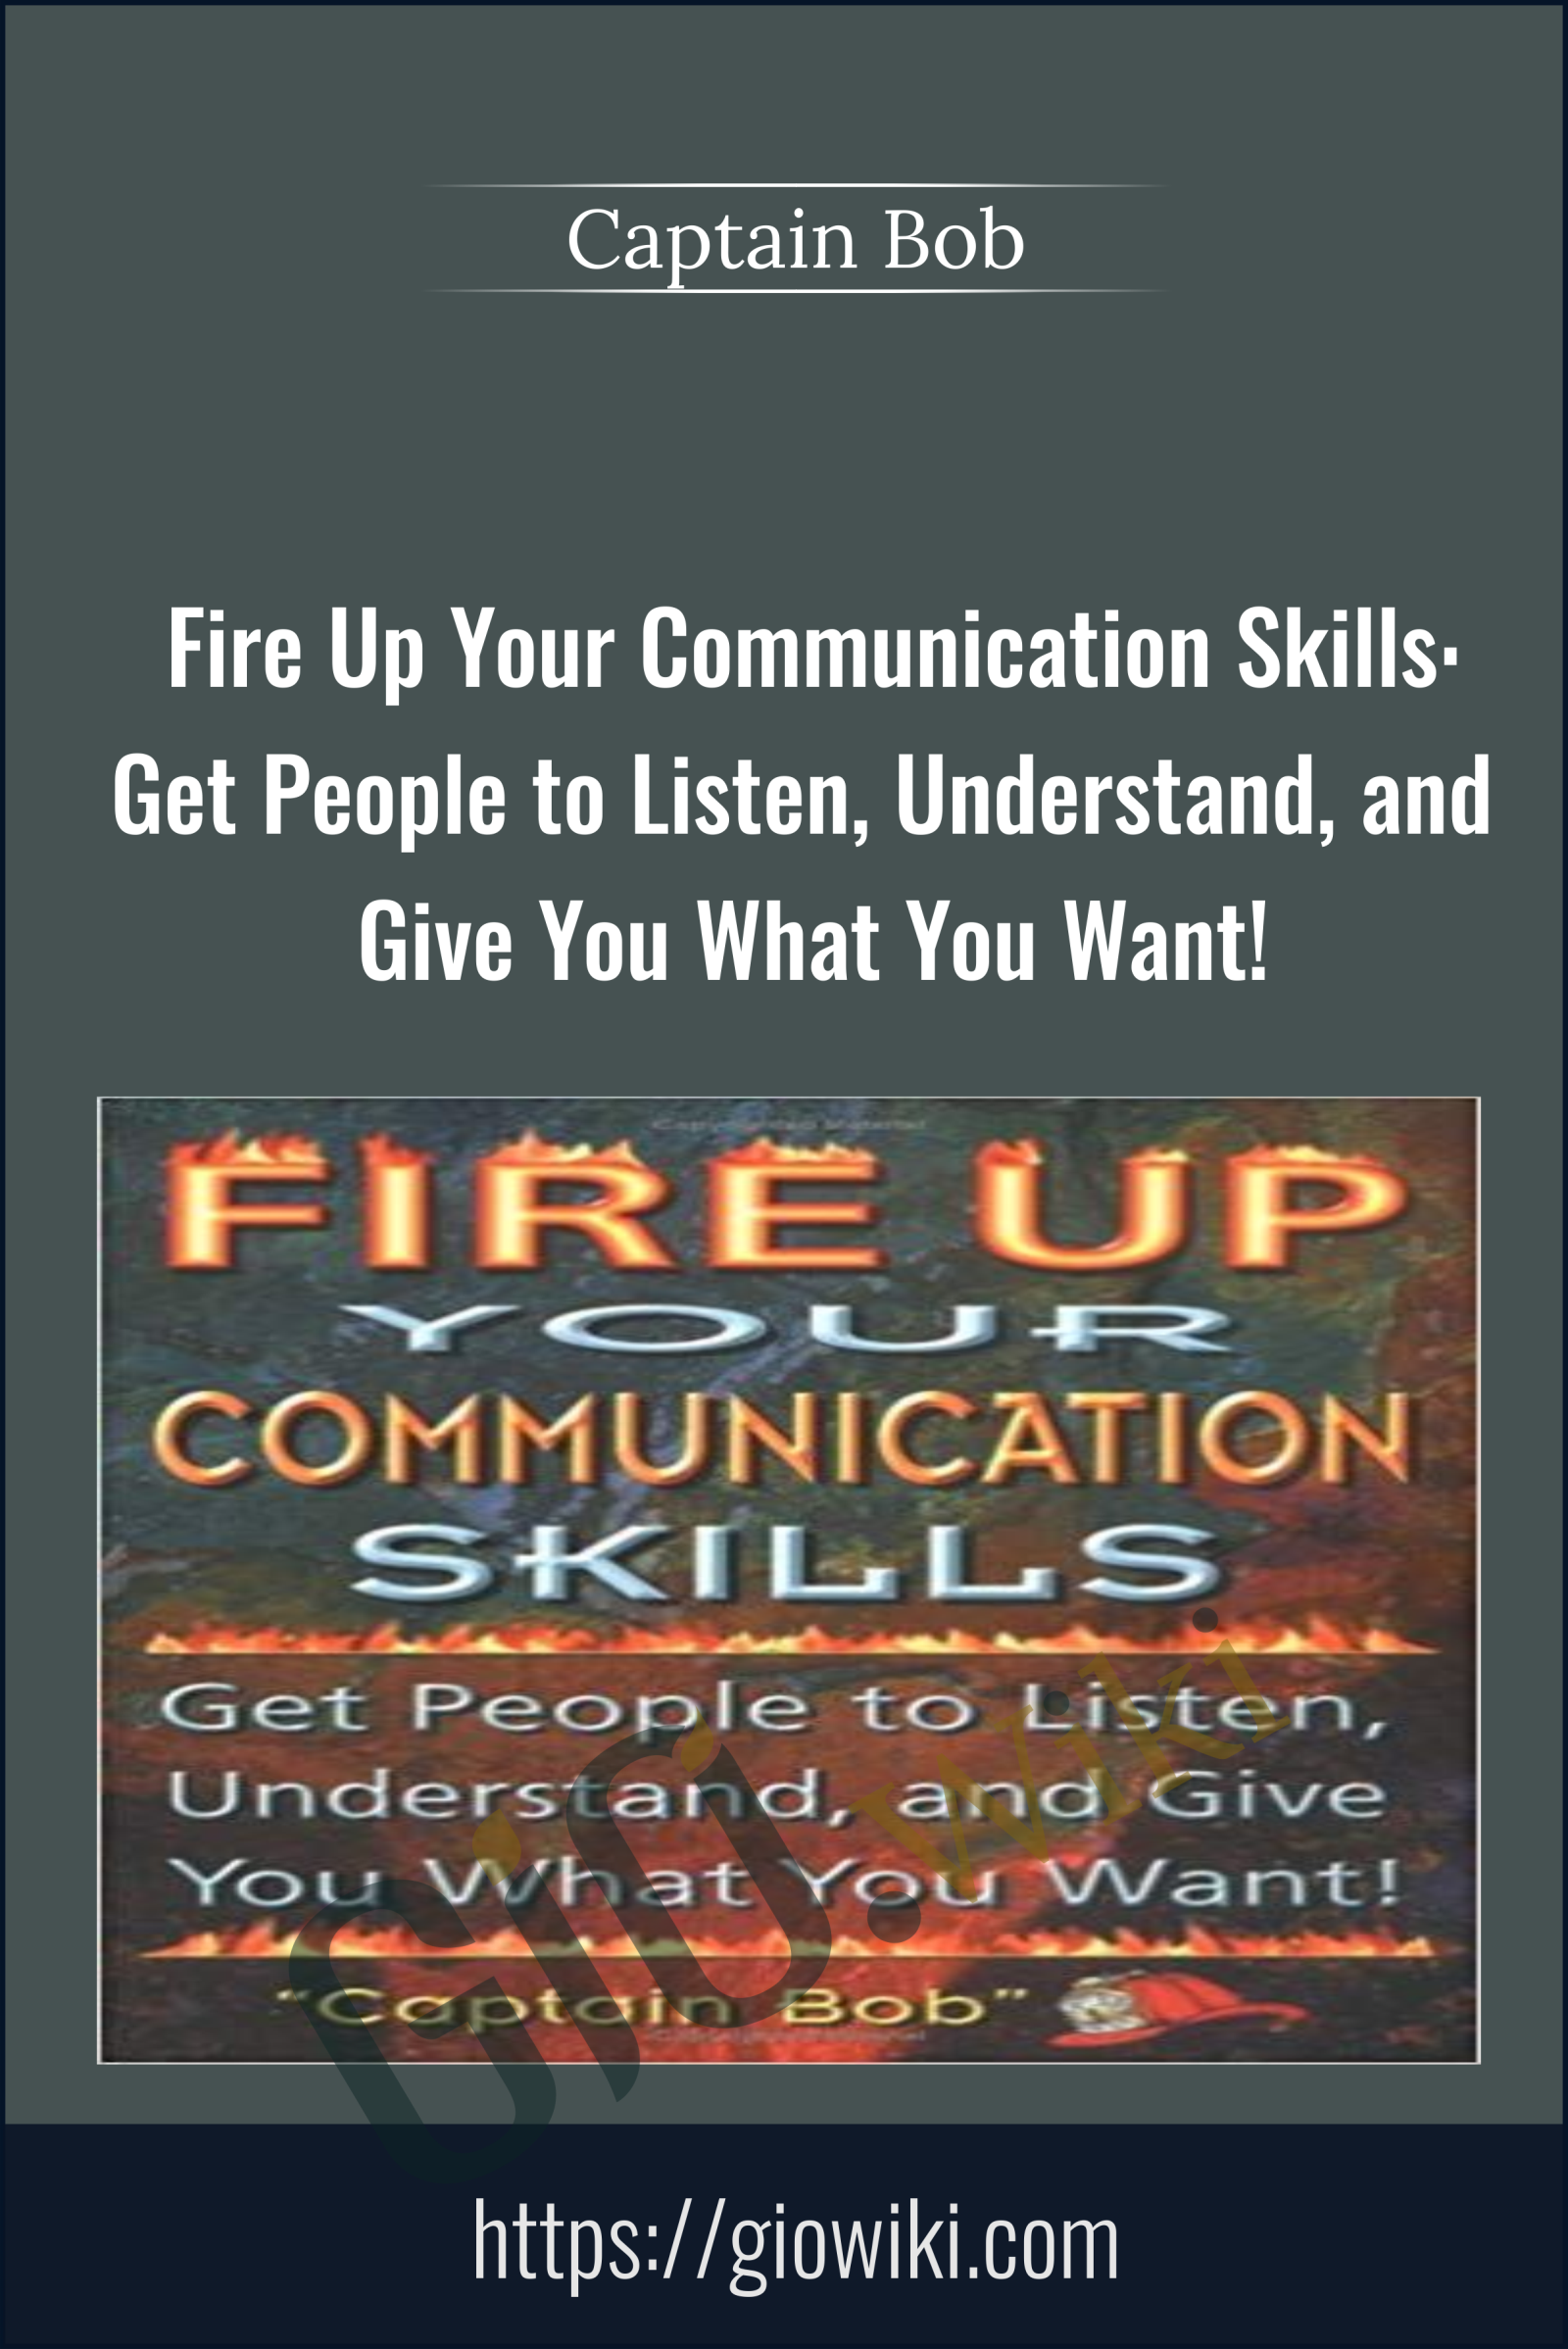 Fire Up Your Communication Skills: Get People to Listen, Understand, and Give You What You Want! - Captain Bob